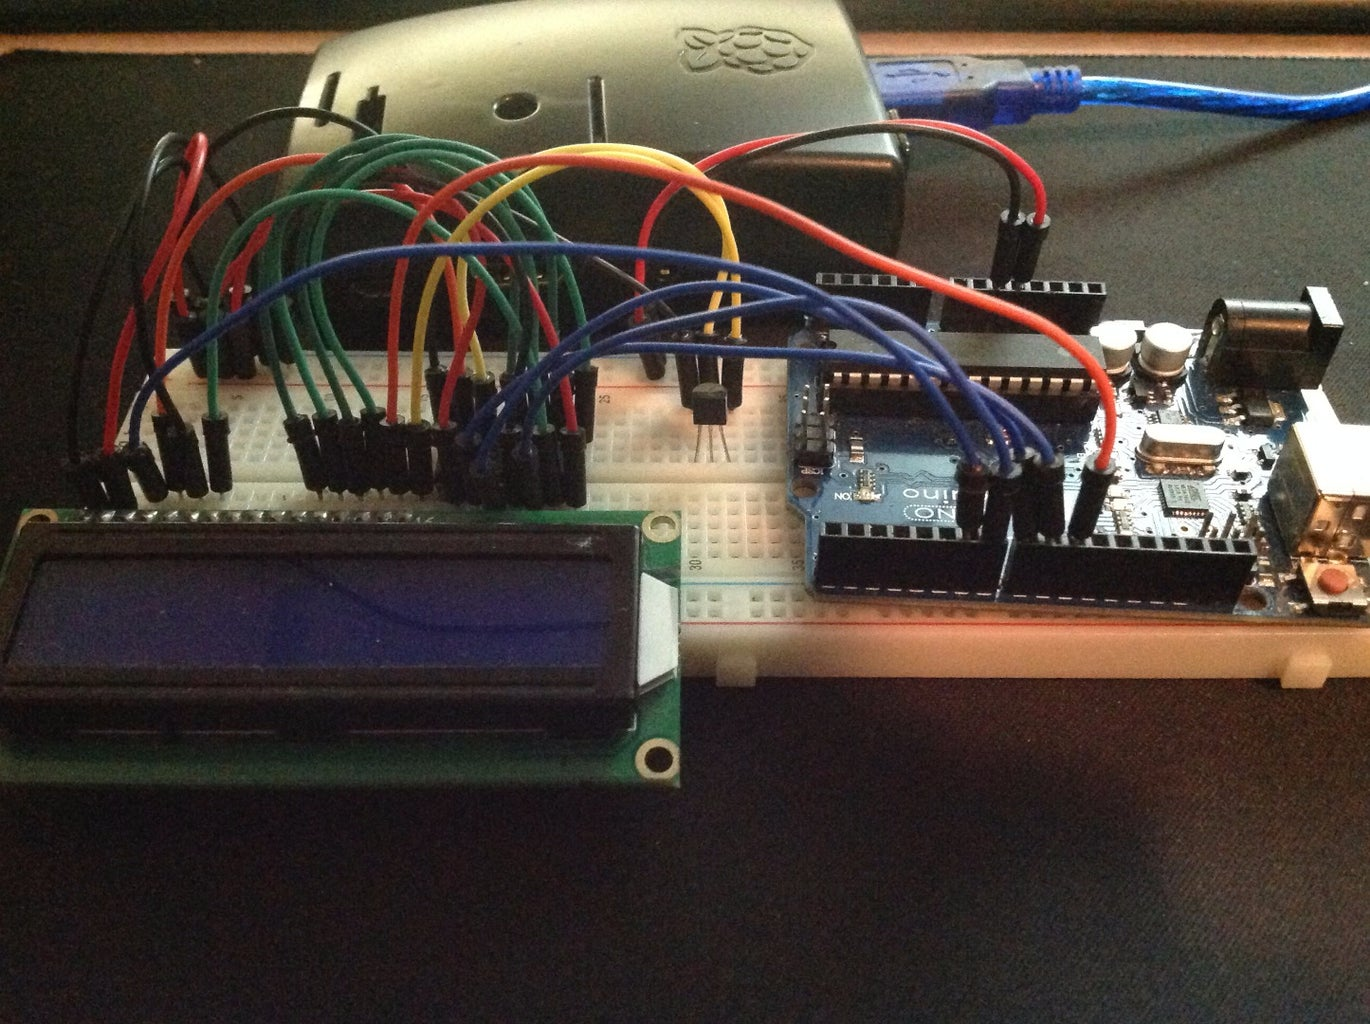 Raspberry Pi + Arduino Serial With LCD Screen